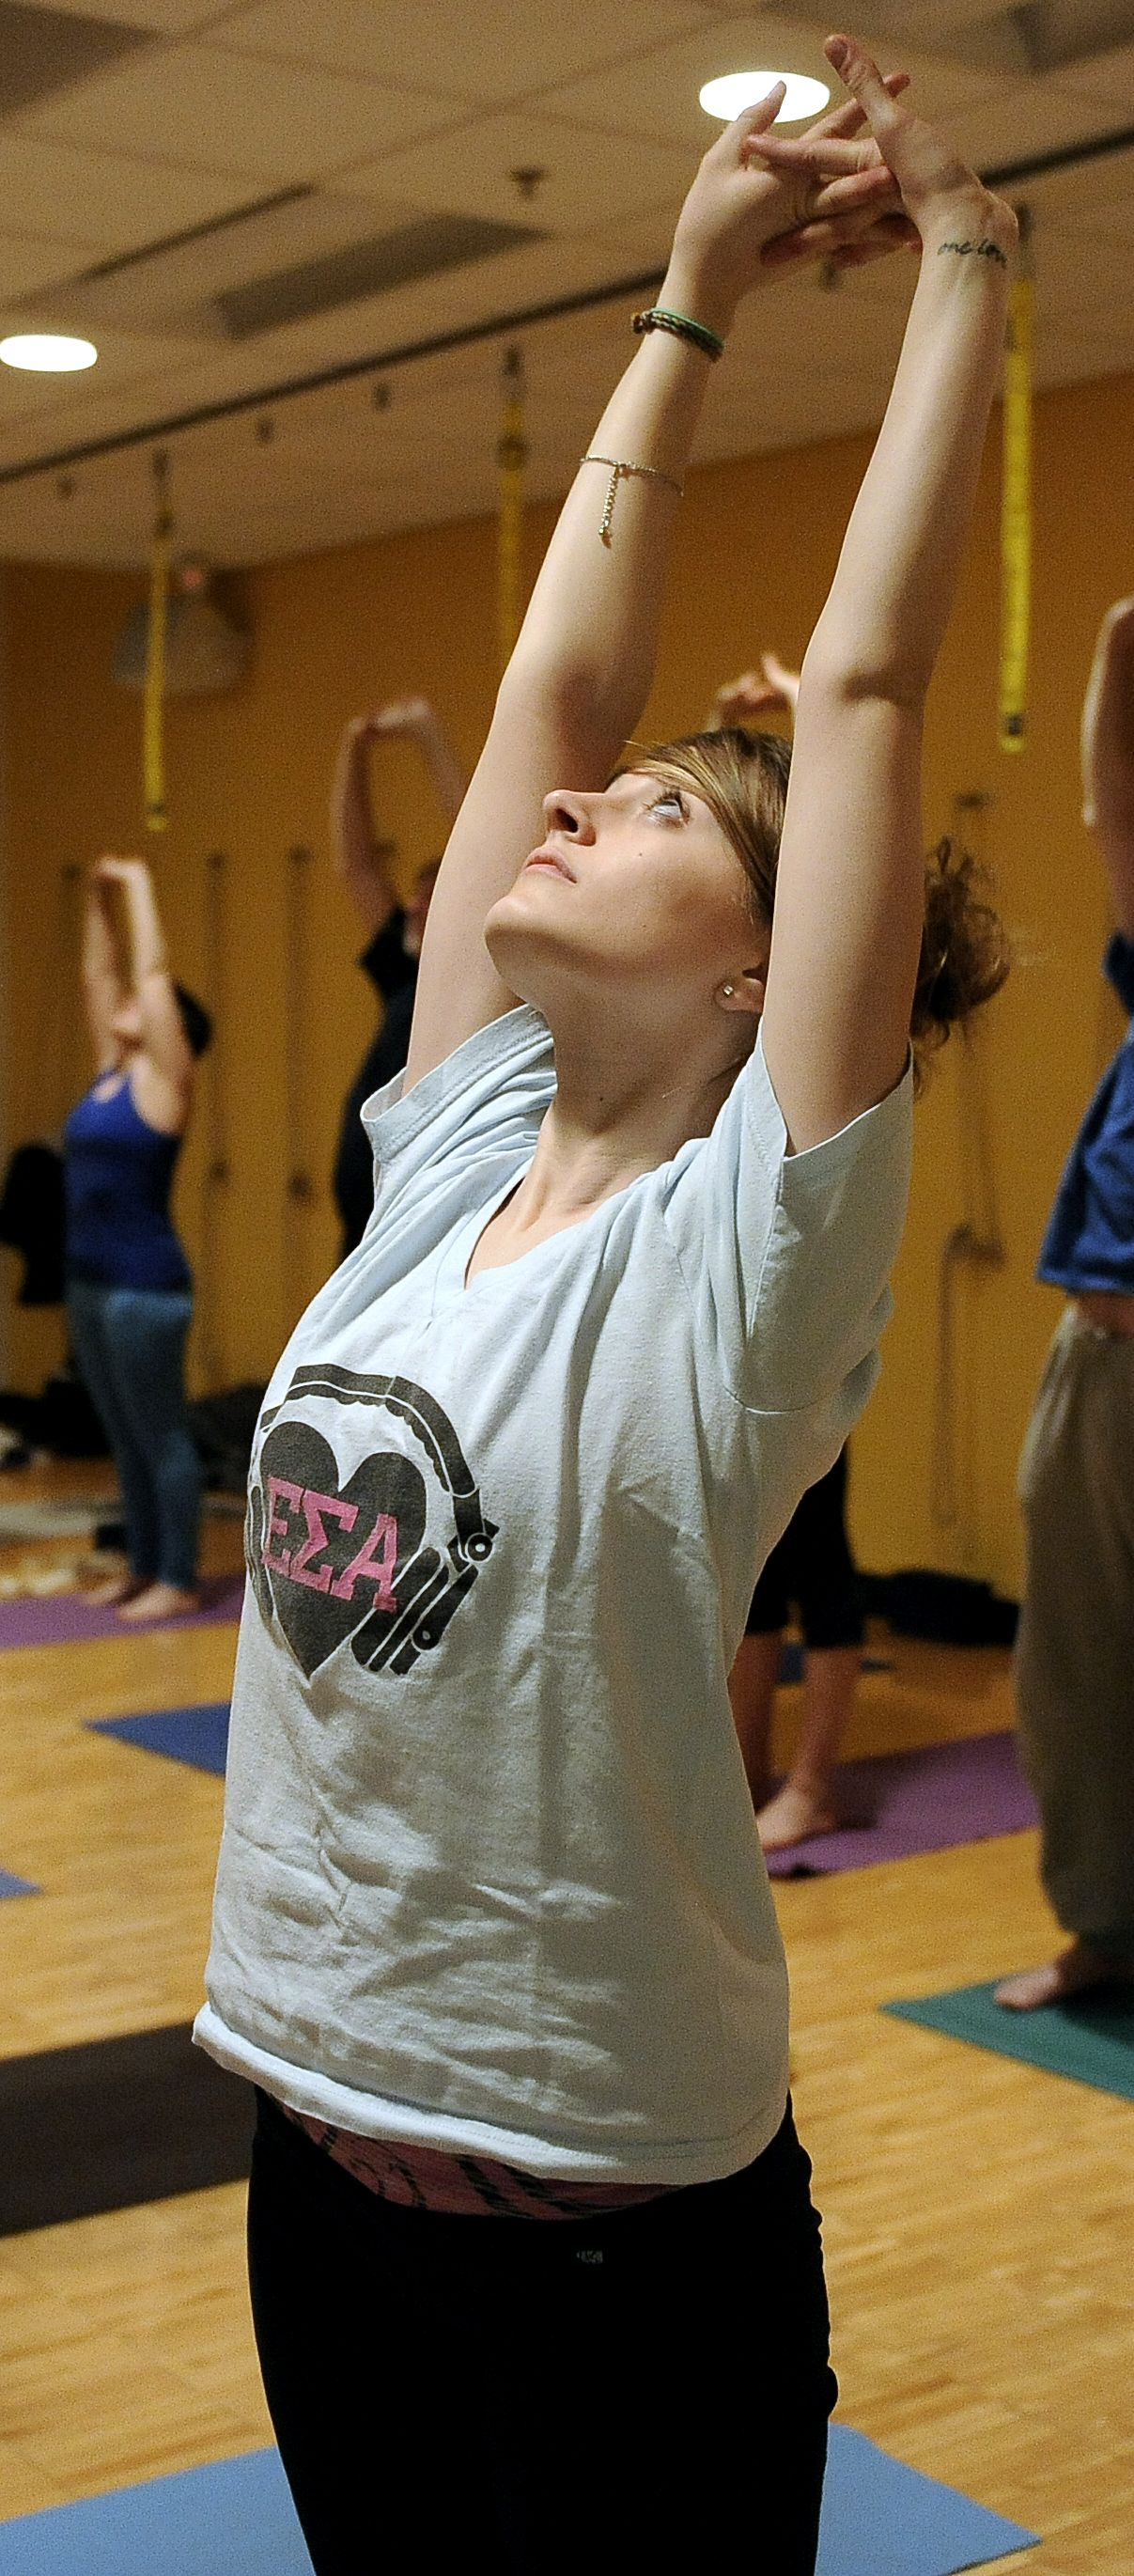 Ann Arbor YMCA Adult Yoga Class, Tuesday, January 19, 2016.